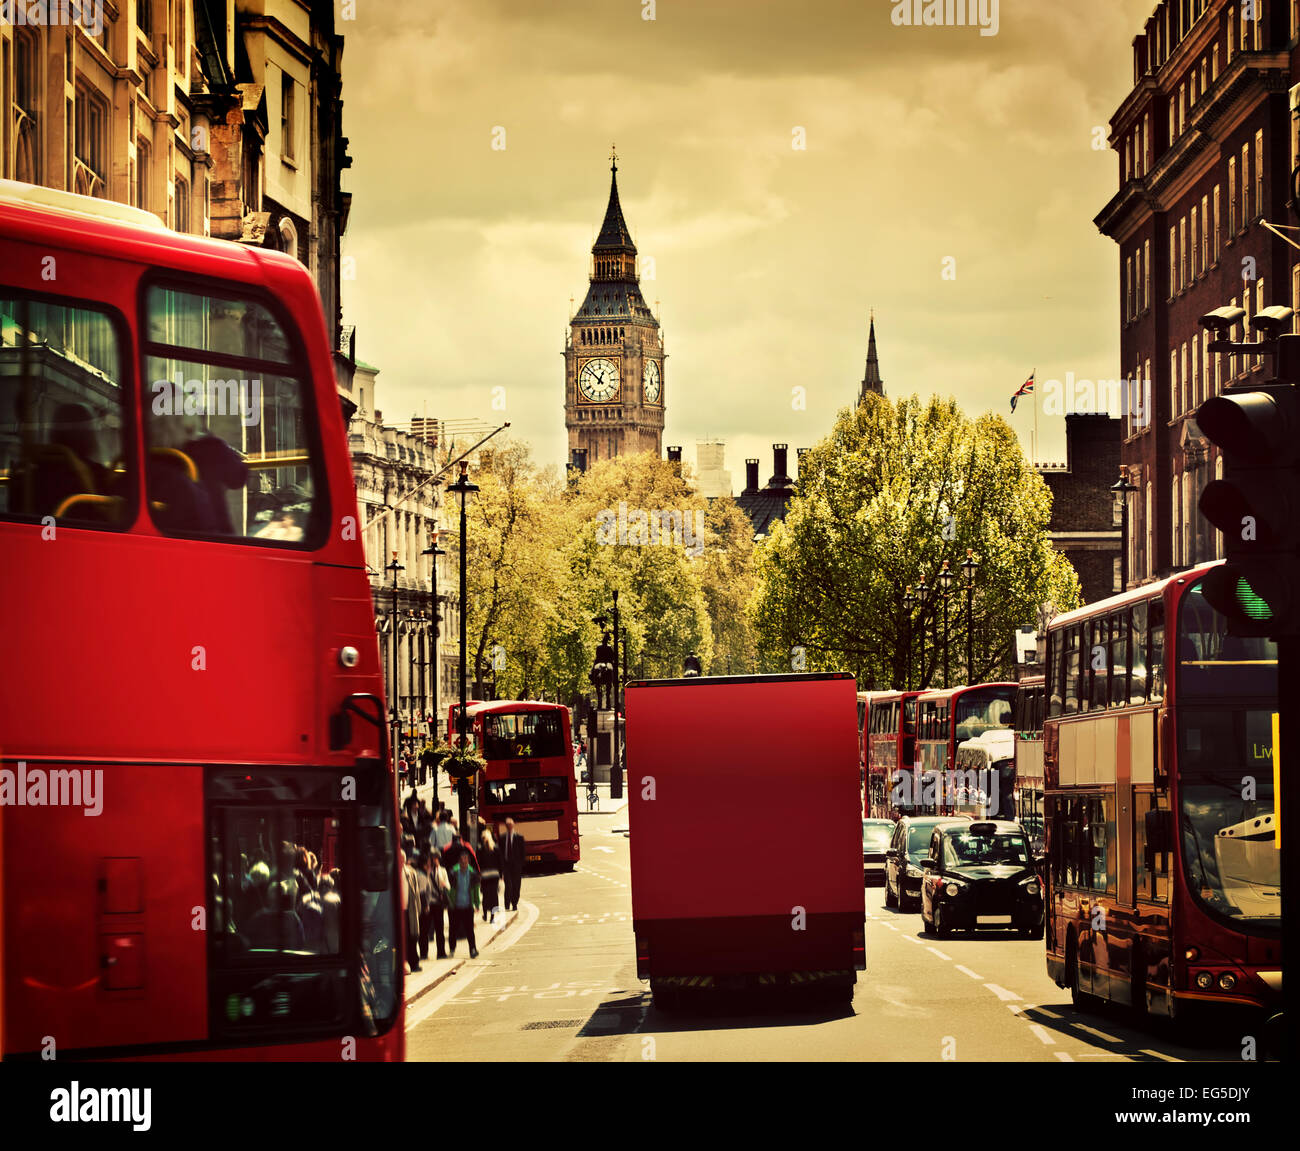 Busy street of London, England, the UK. Red buses, Big Ben in the background. - Stock Image